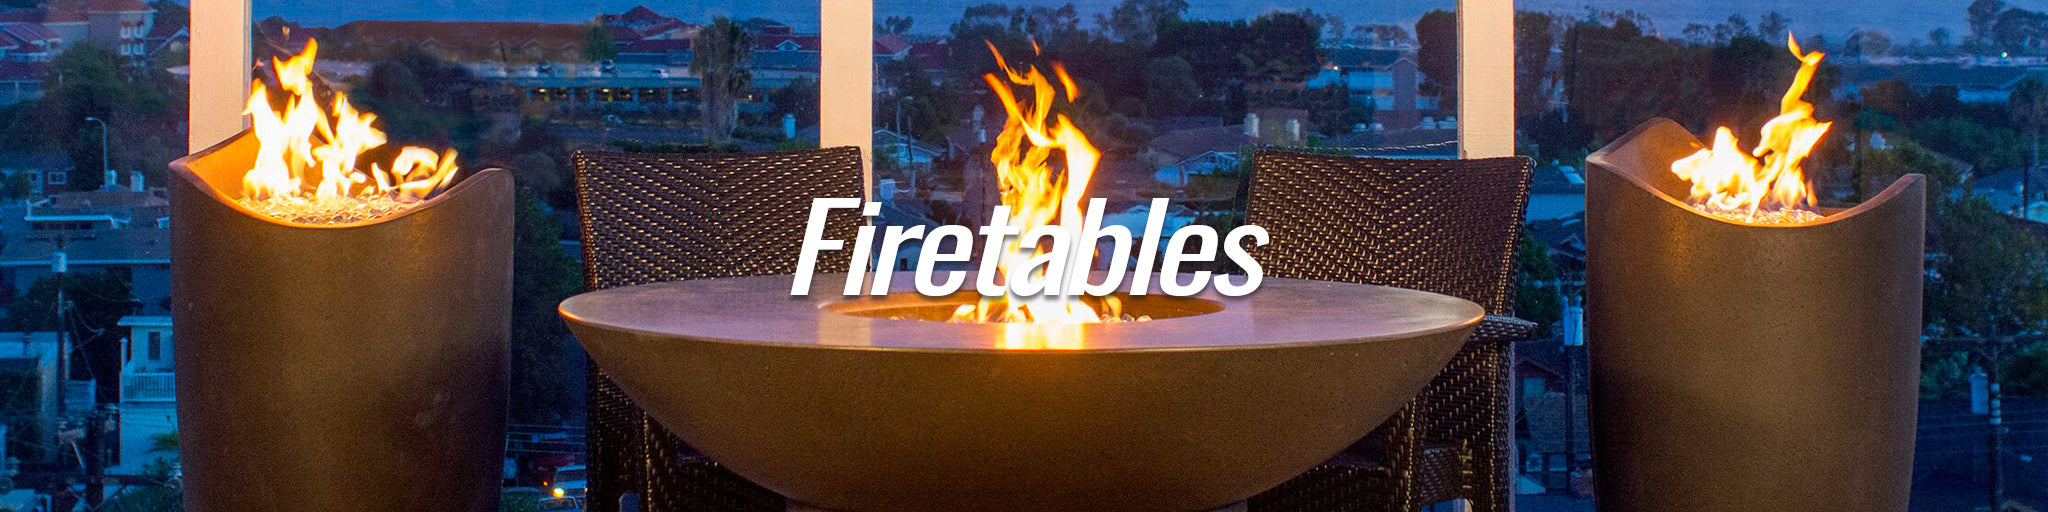 FIRETABLES&OUTDDOR-OCCASIONAL-SUBBANNER